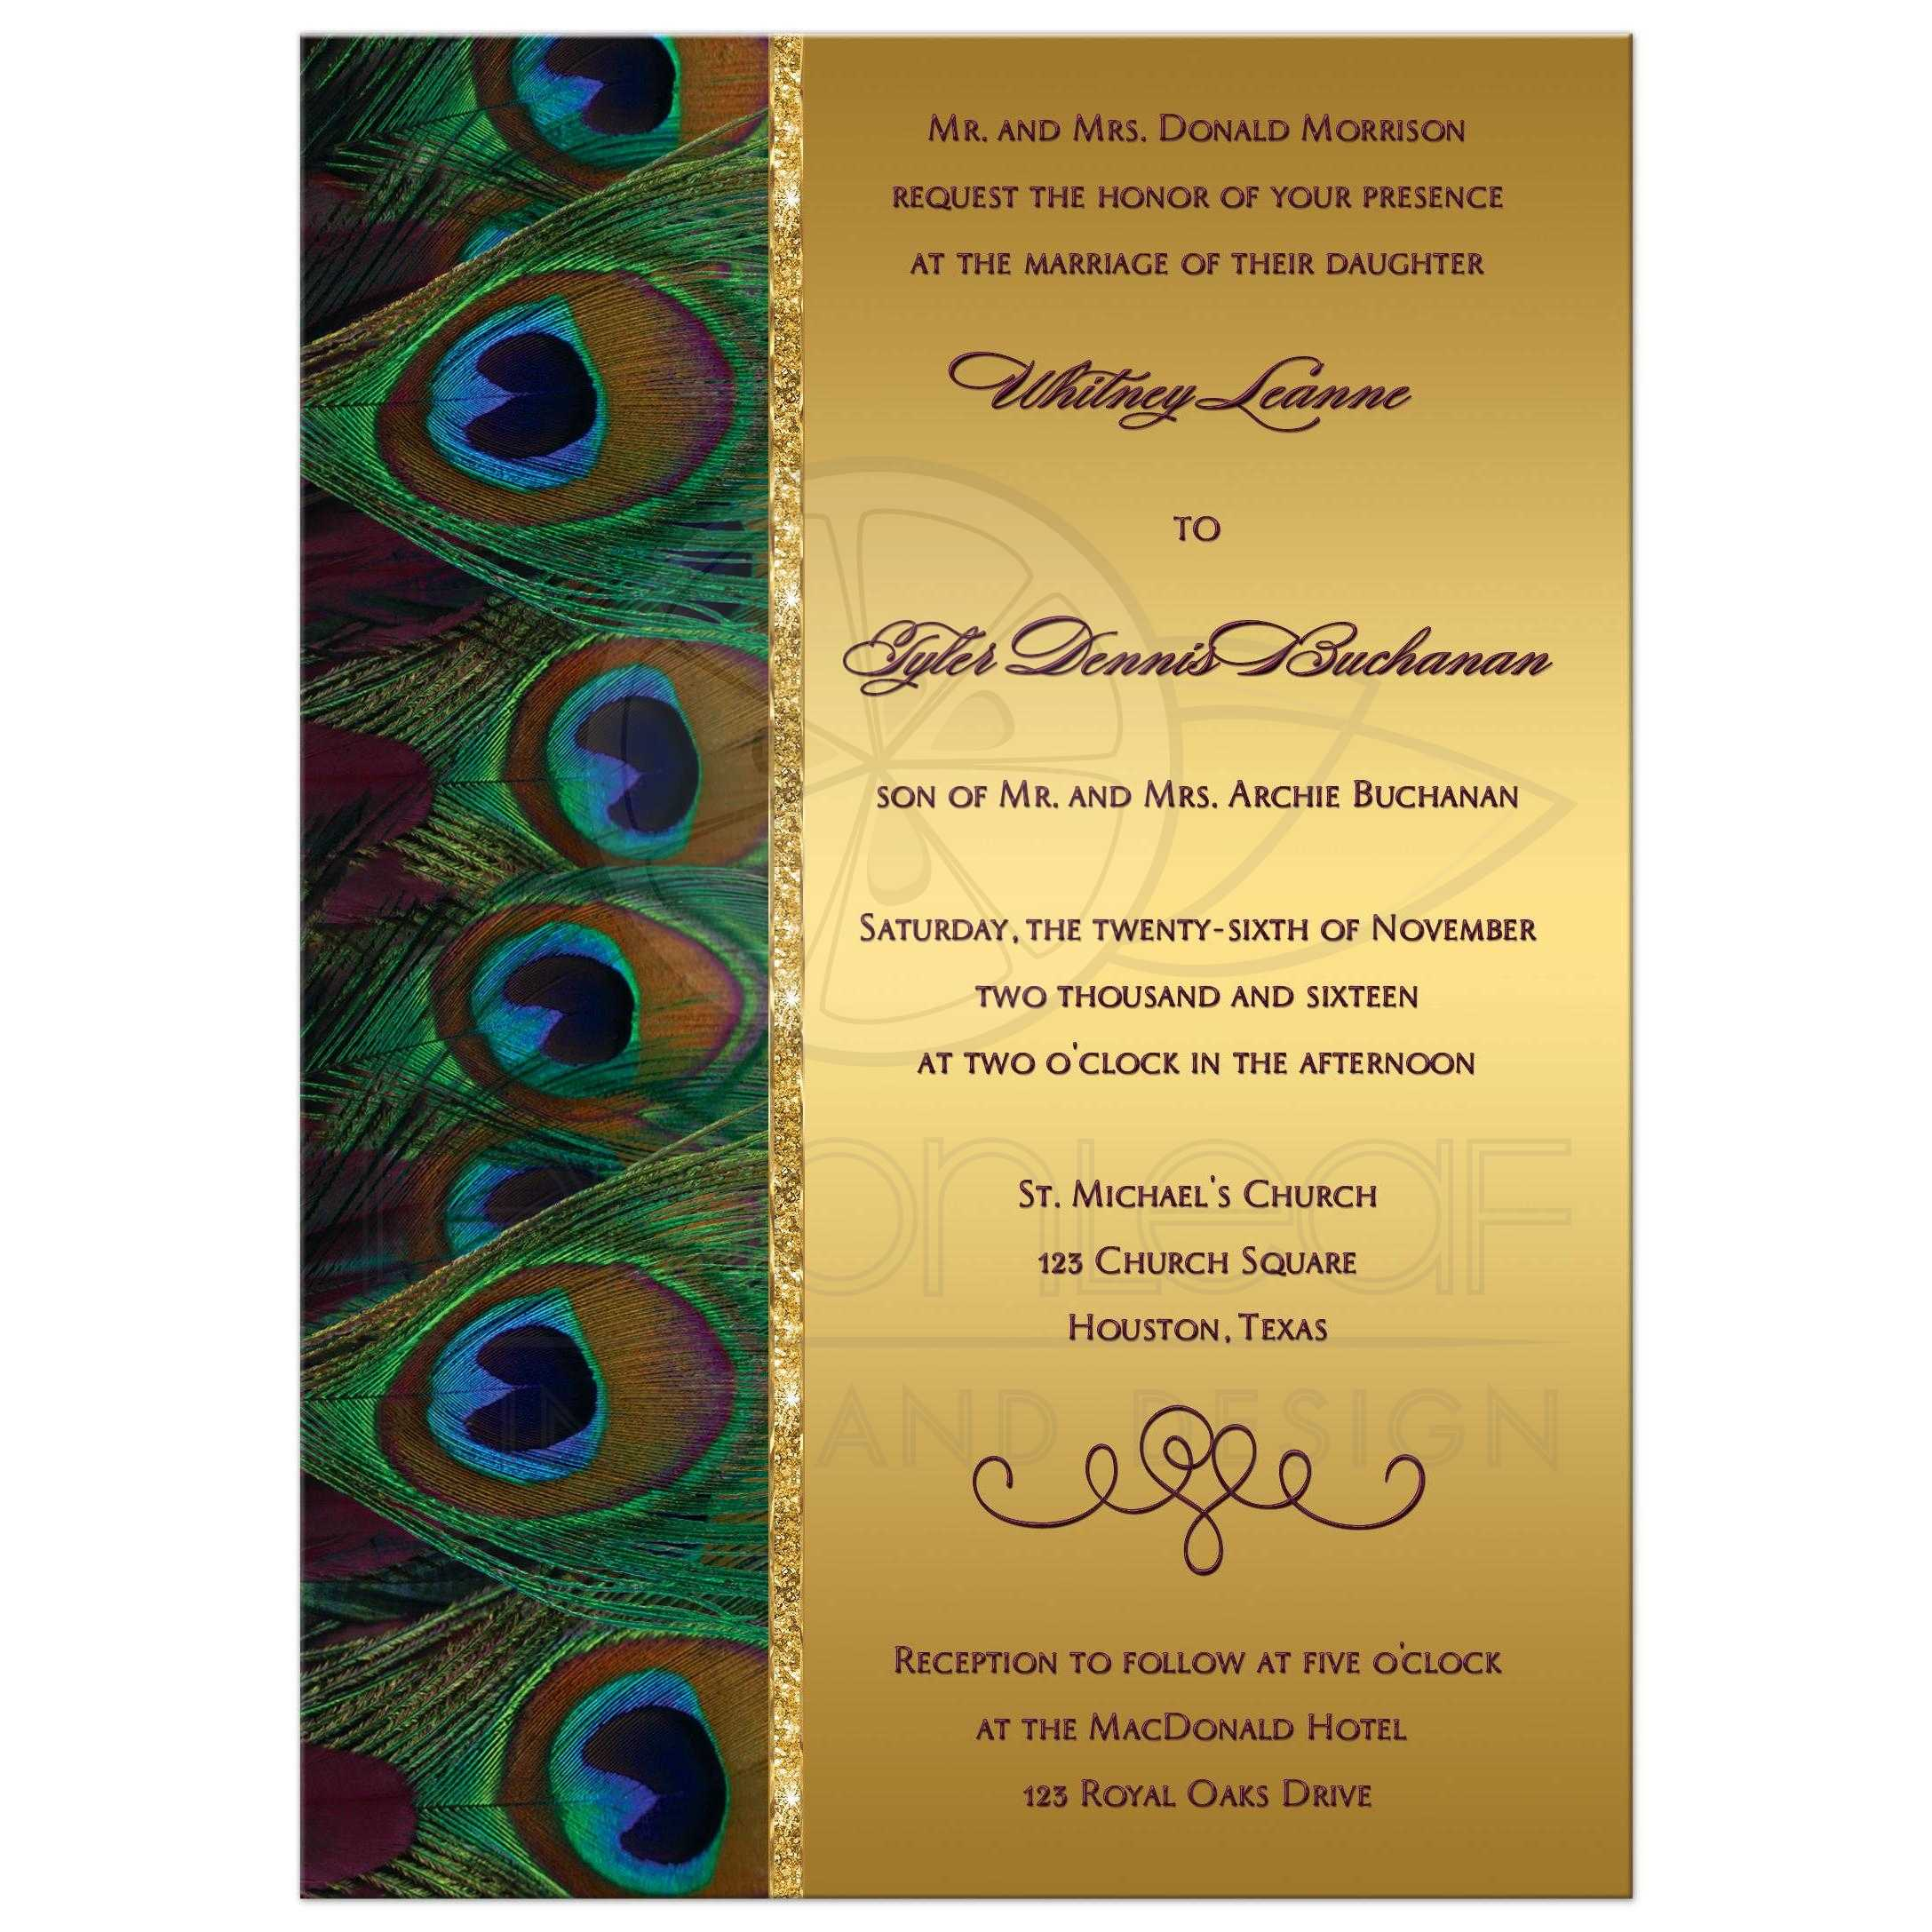 Wedding Invitation | Peacock Feathers | Gold